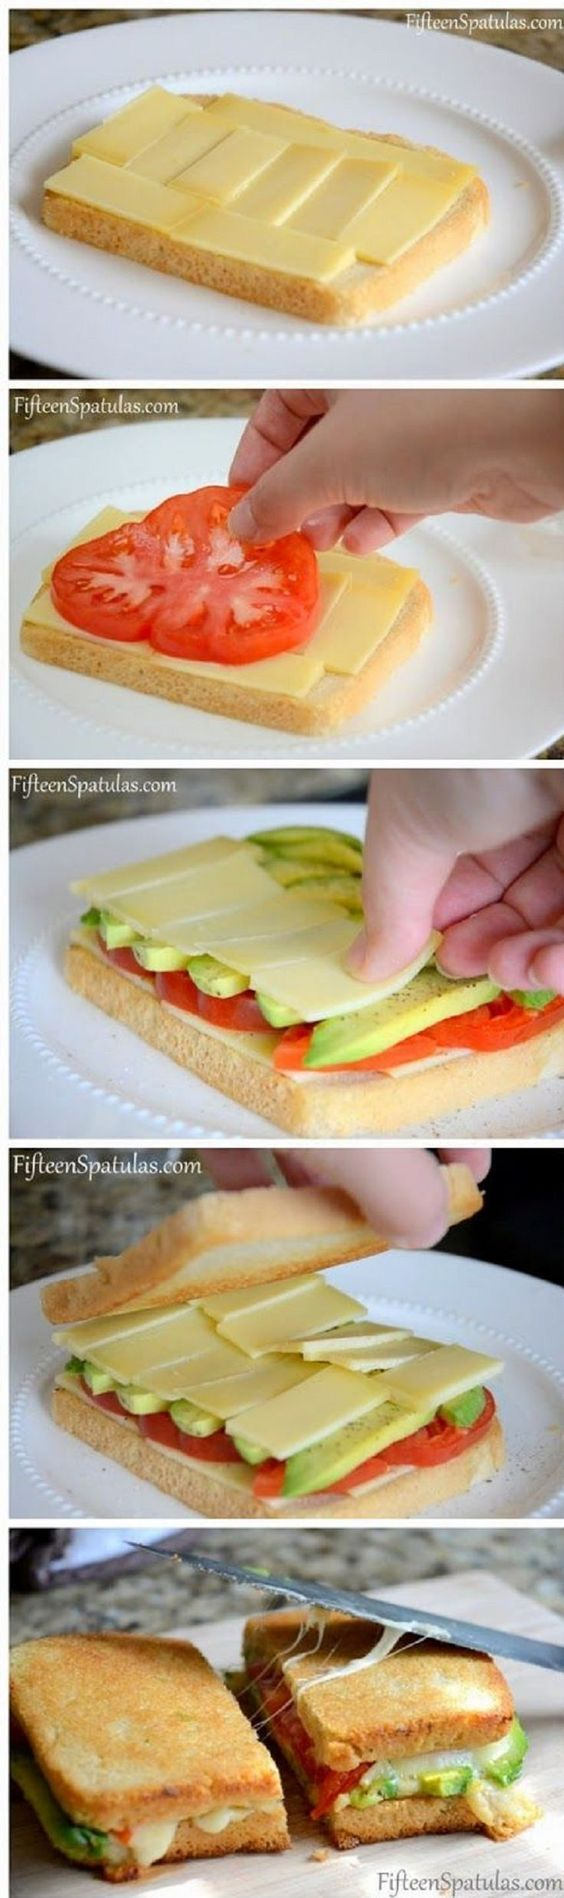 Grilled Cheese with Avocado and Heirloom Tomato  16 Healthy Spring Recipes for Kids